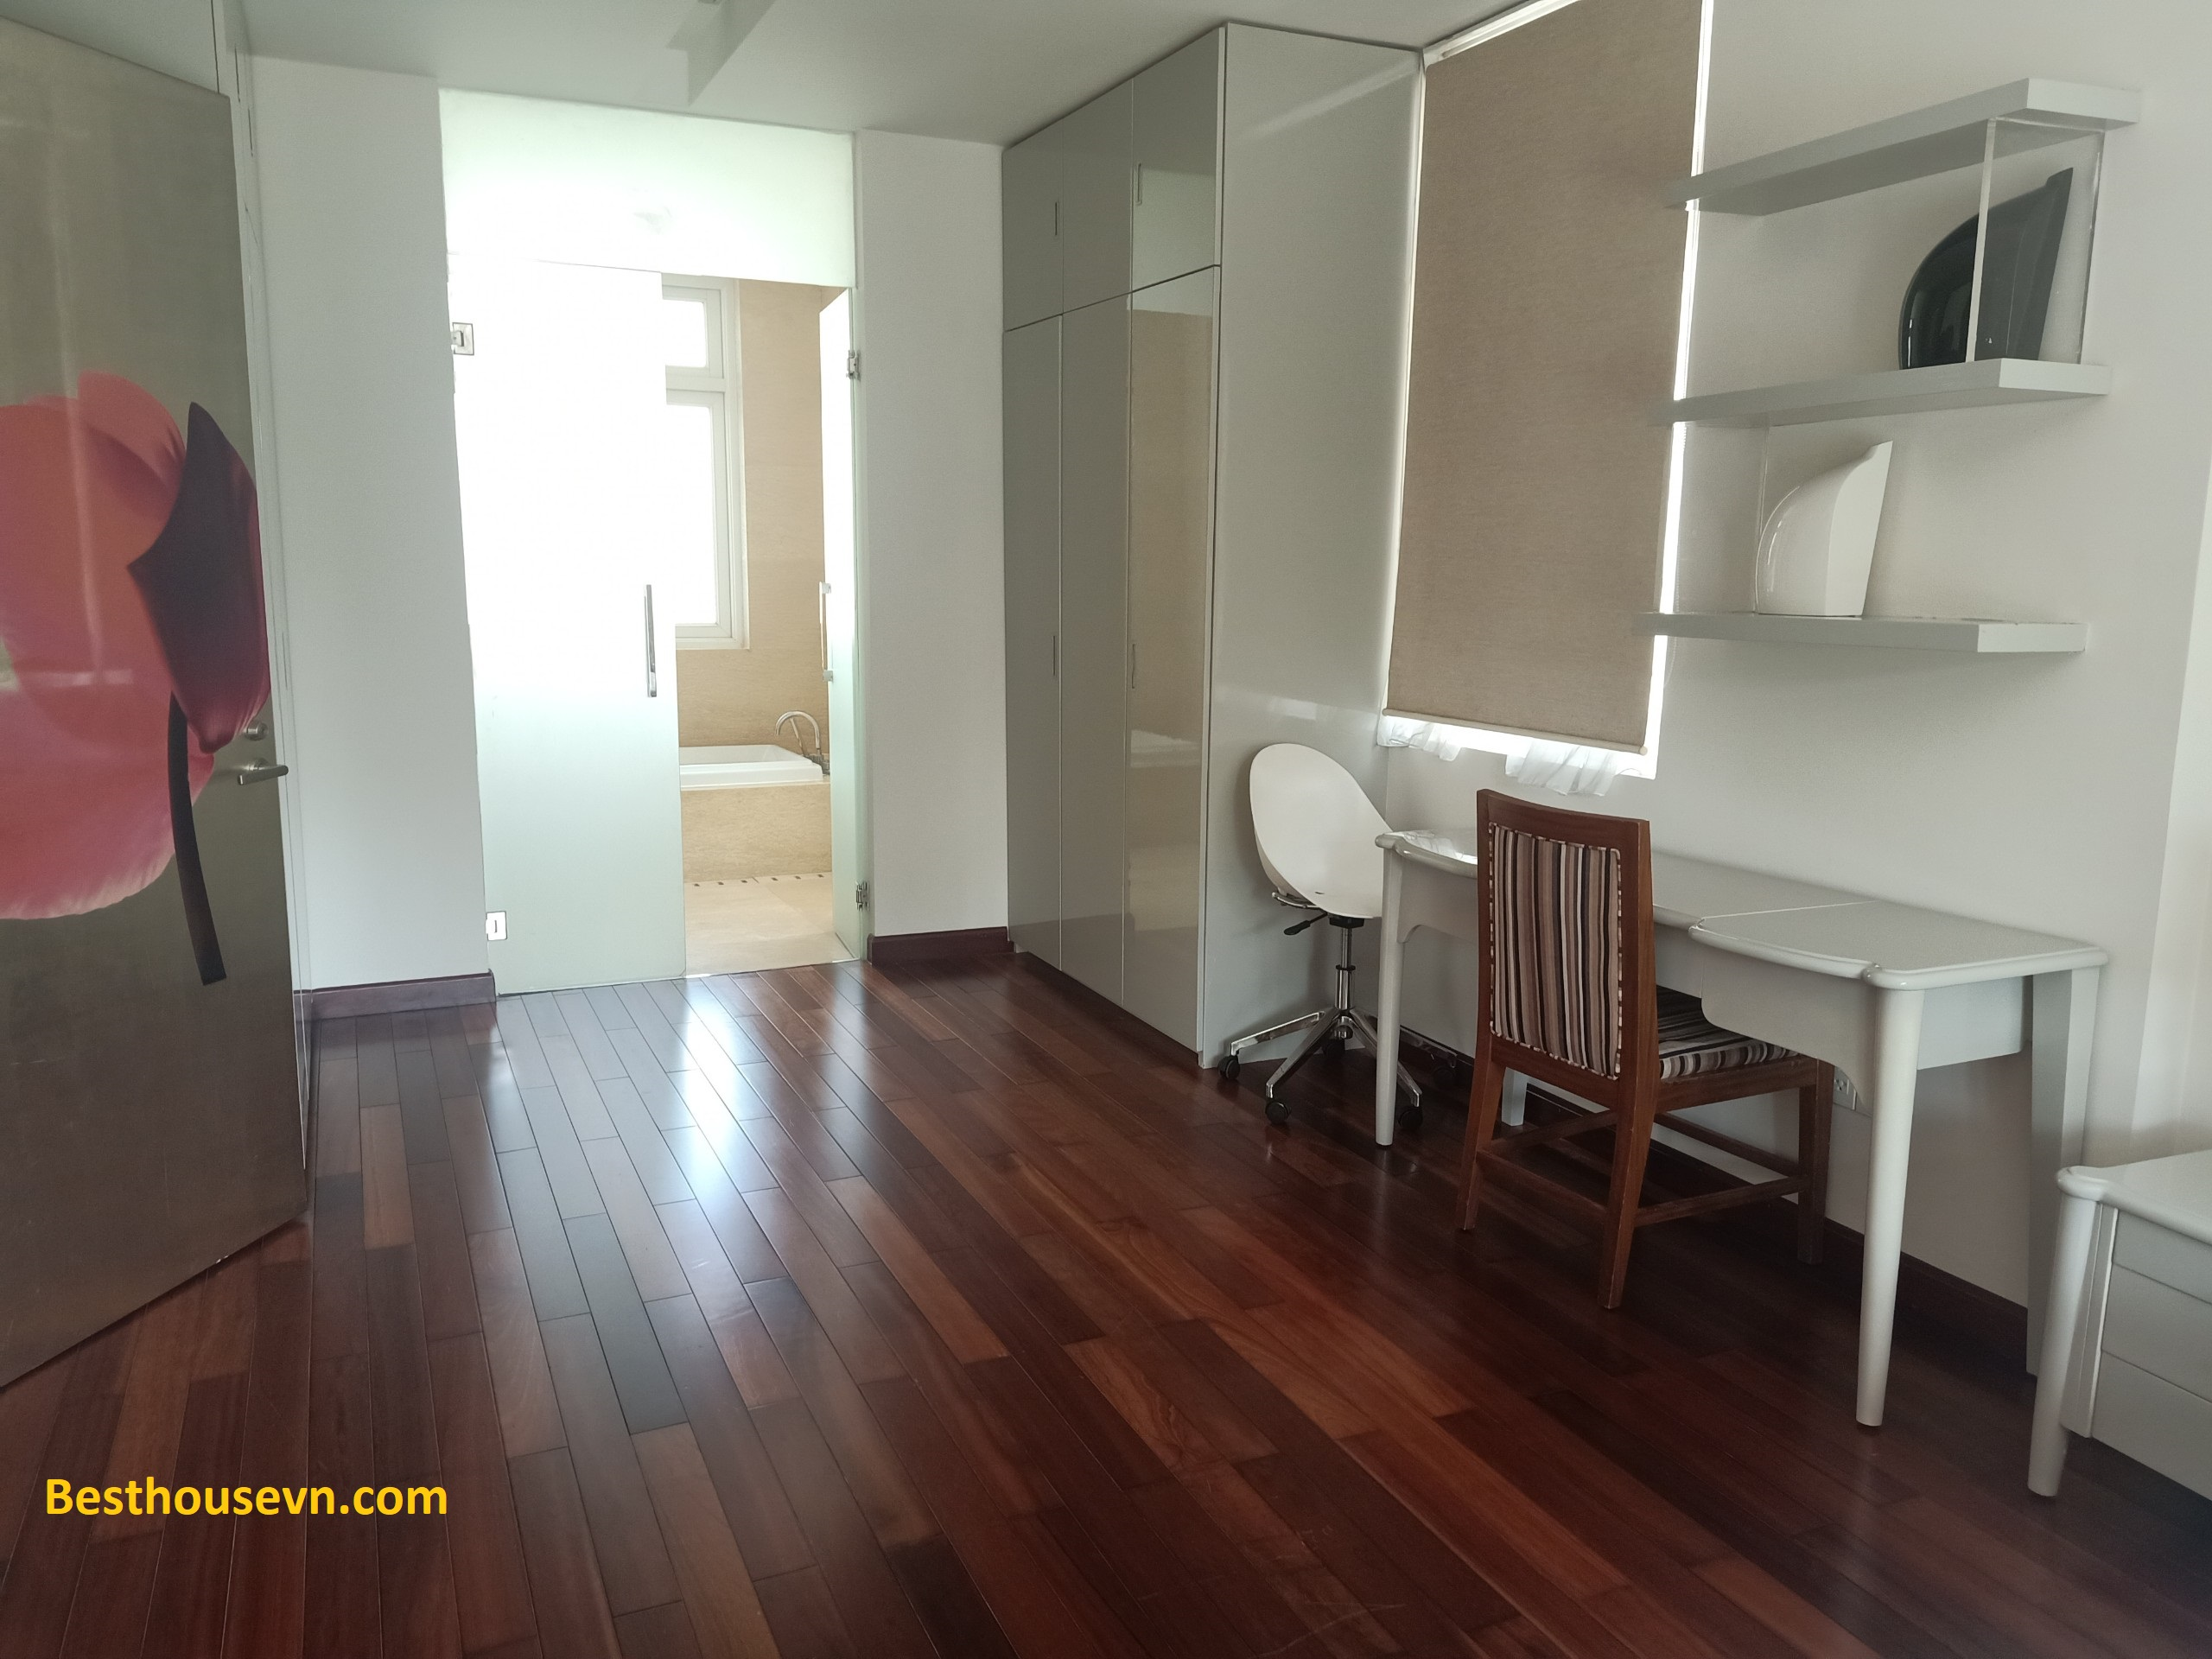 swimming-pool-Villa-for-rent-in-phu-my-hung-6